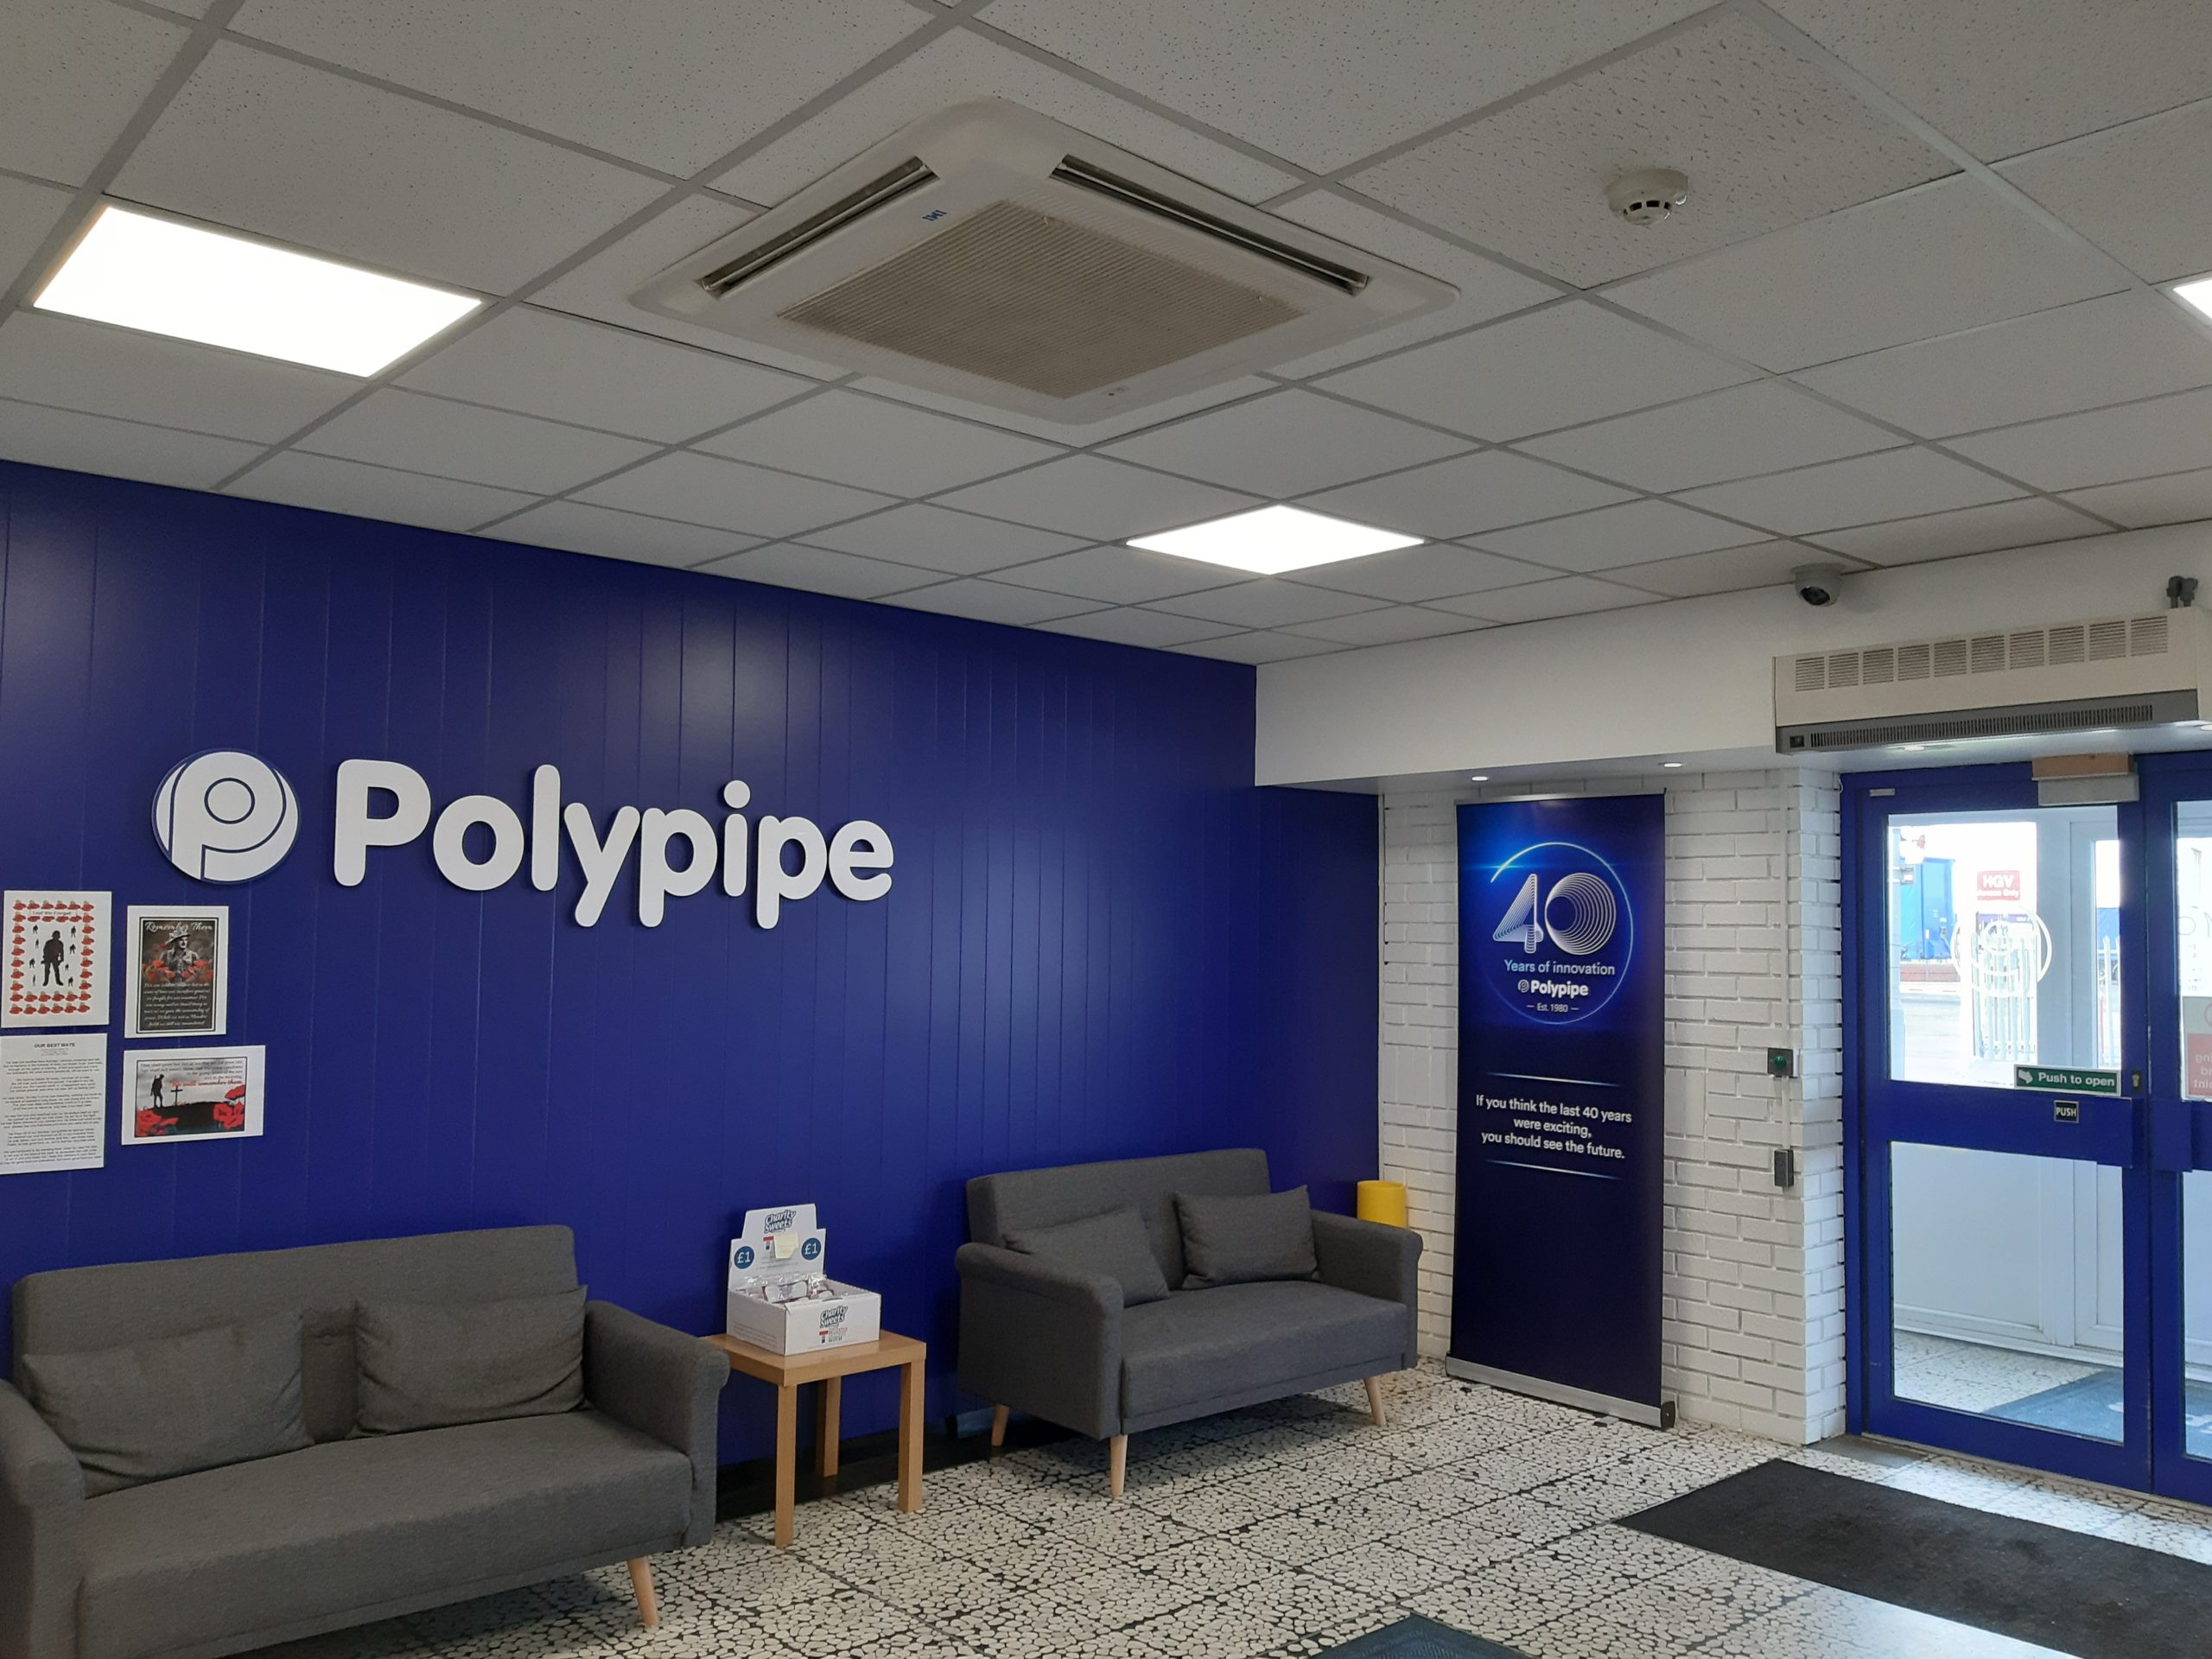 Polypipe turns 40